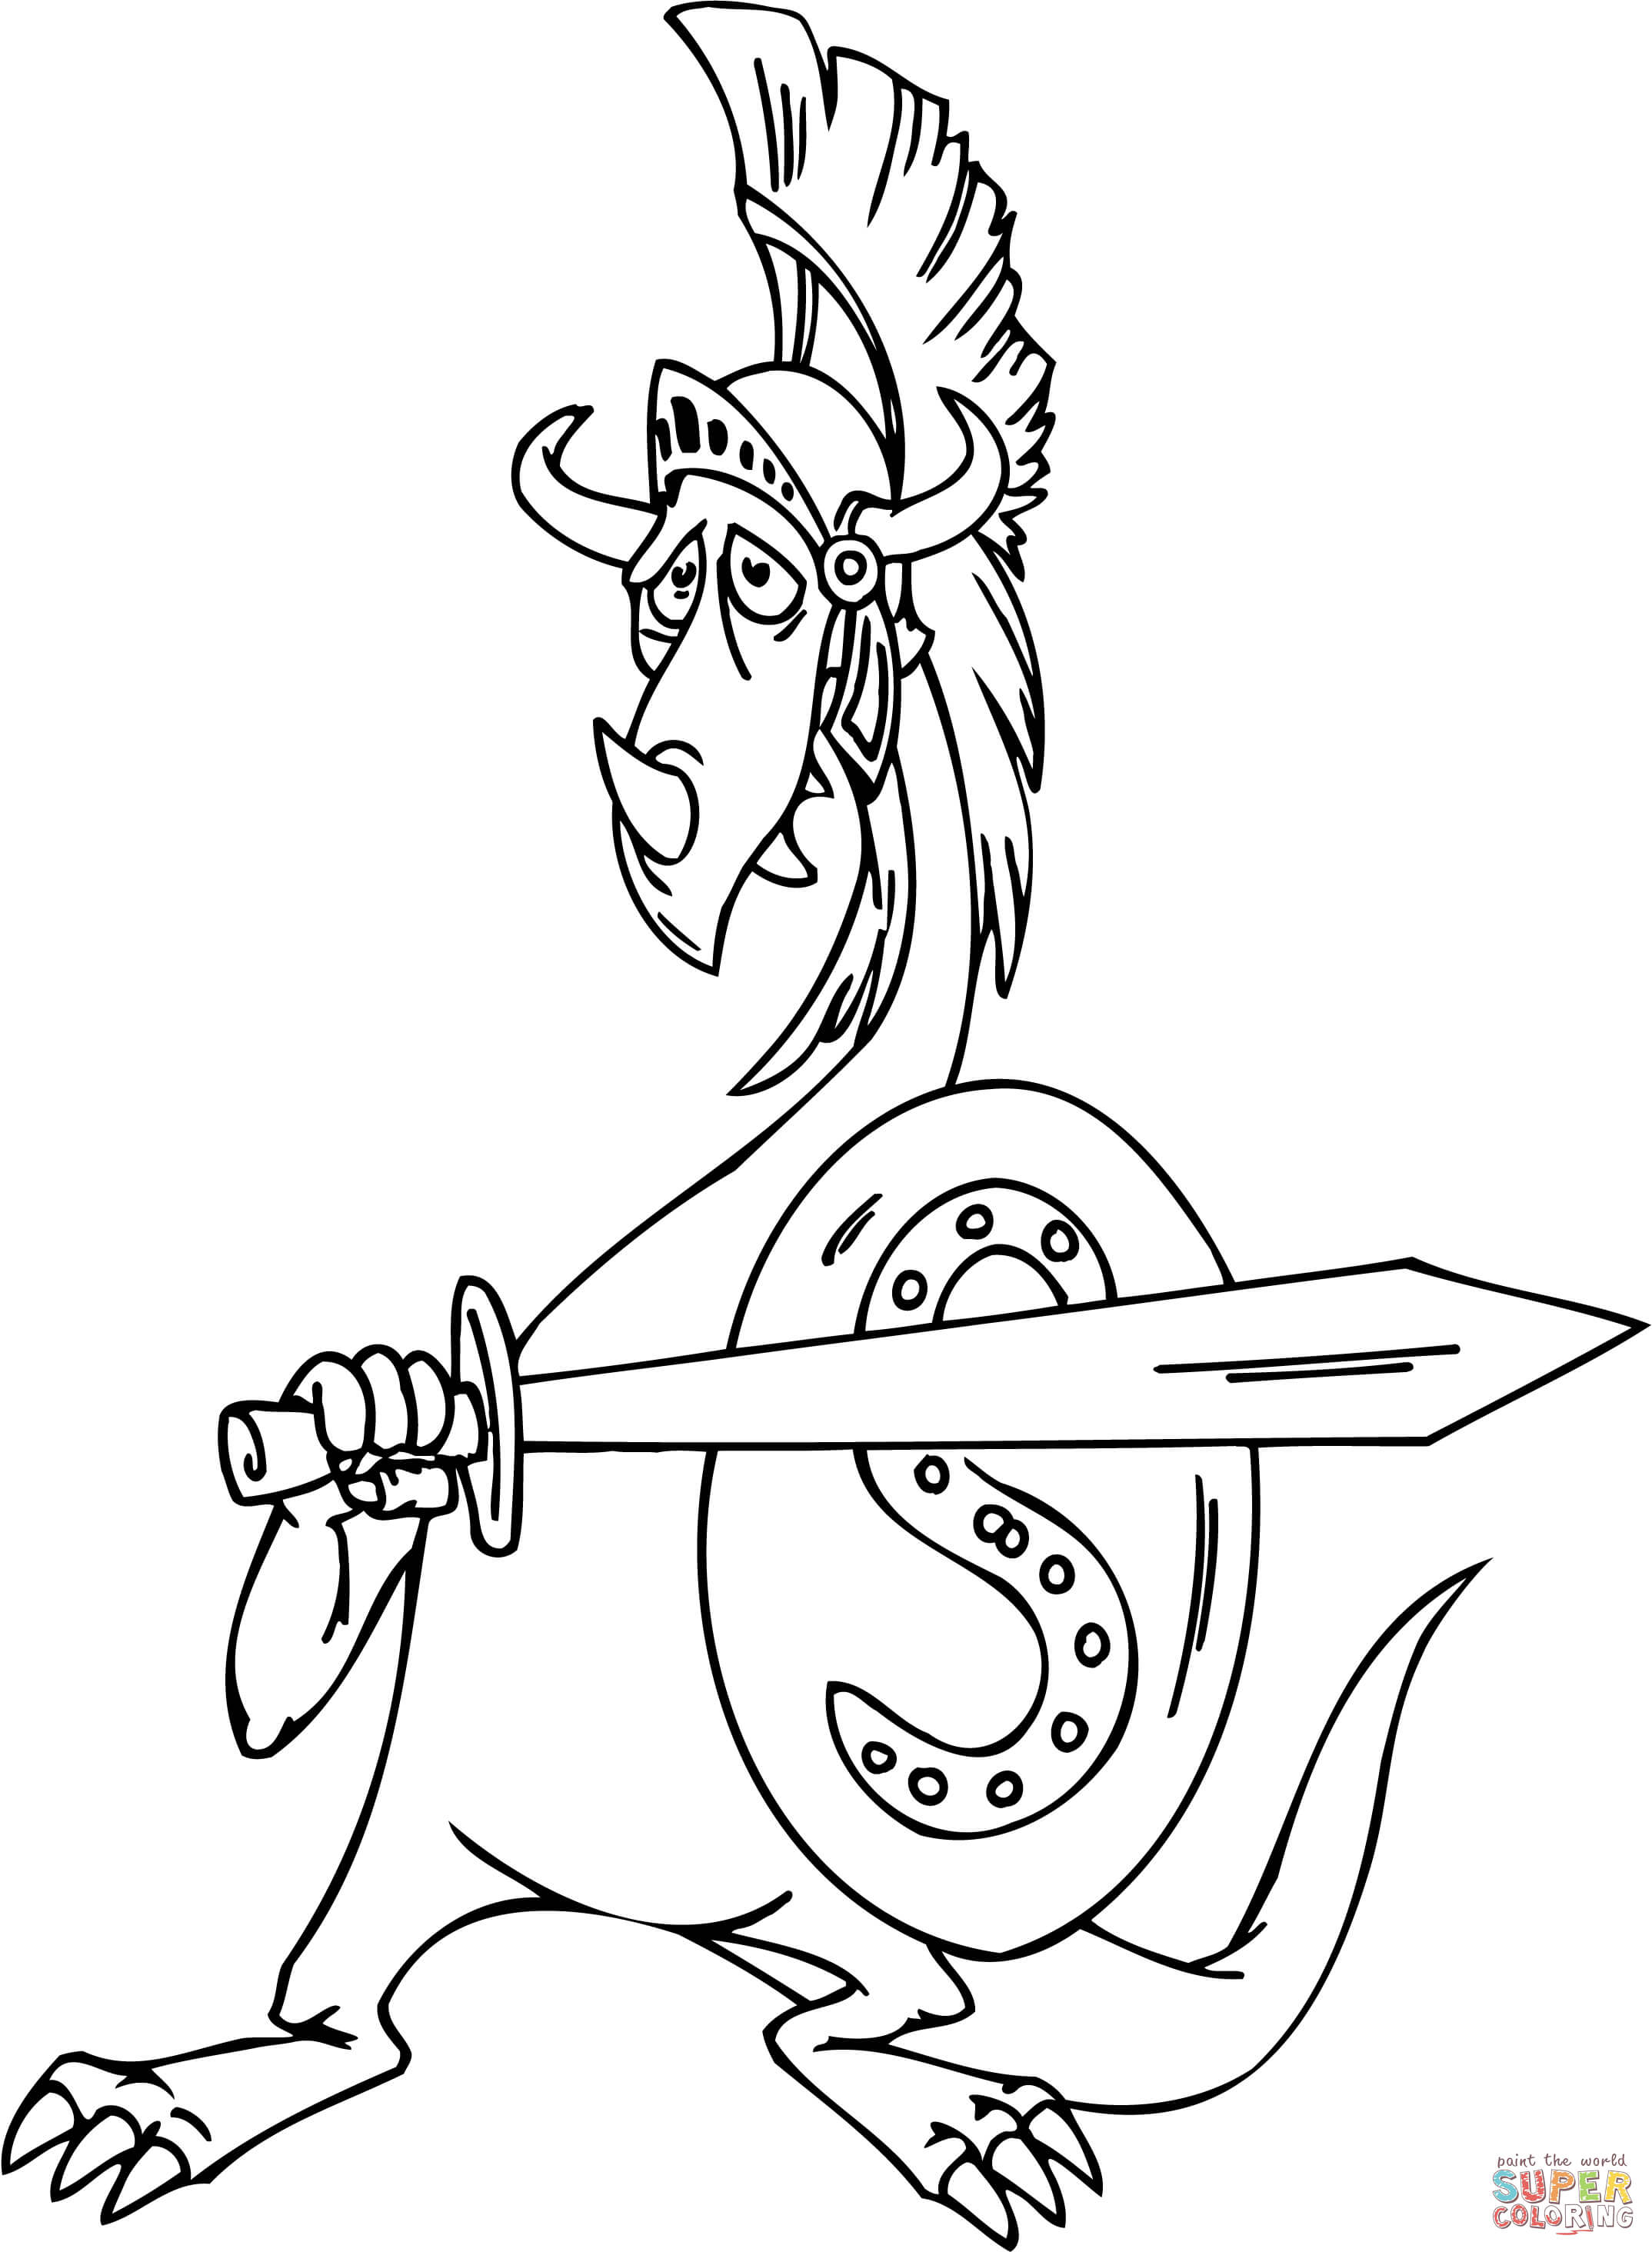 gladiator pictures to colour in gladiator coloring pages coloring pages to in gladiator pictures colour